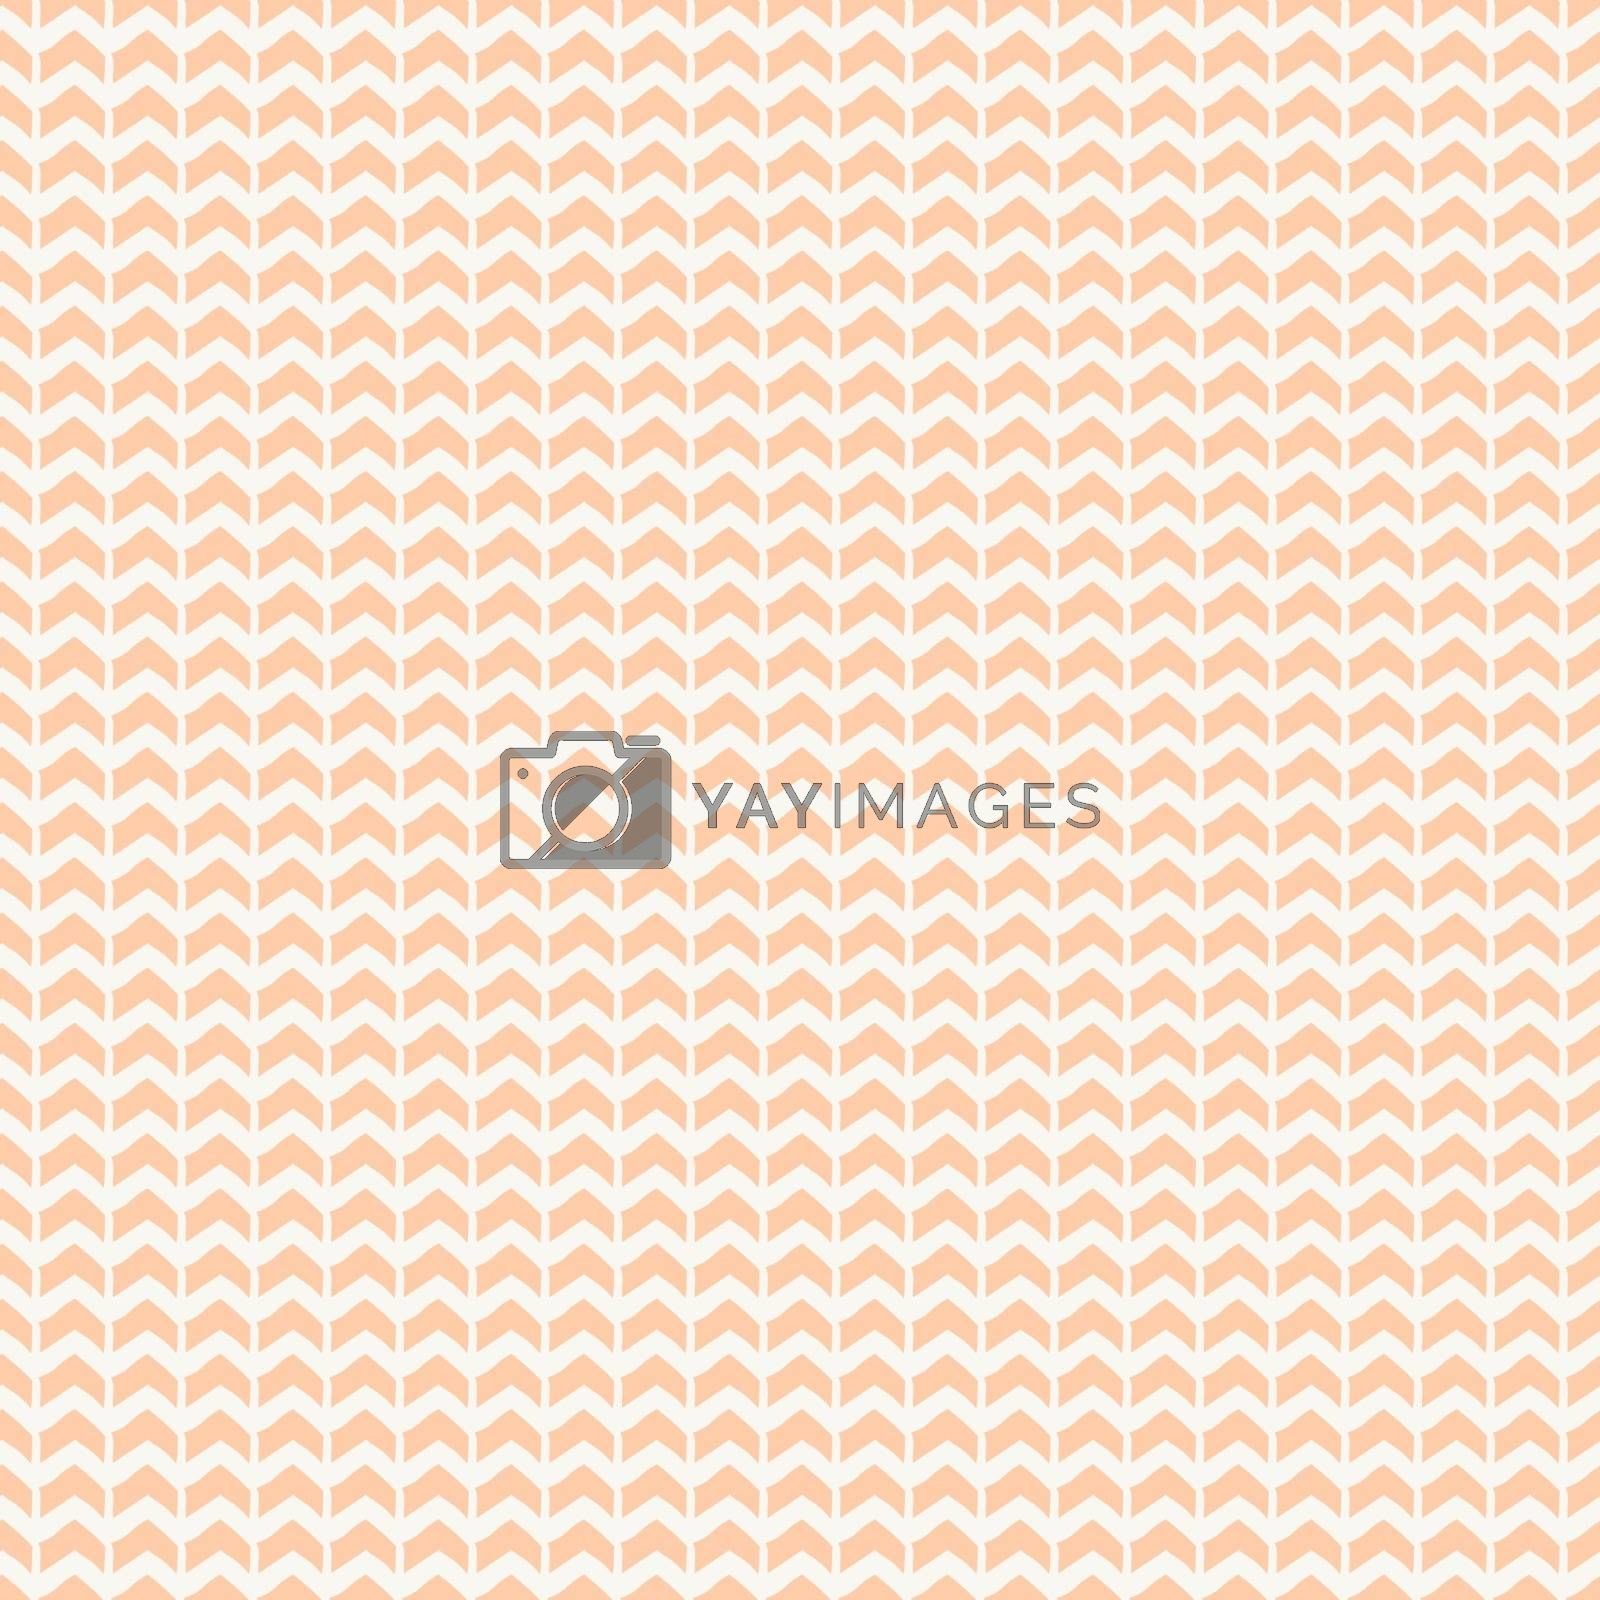 Seamless repeat chevron pattern in blush pink color.